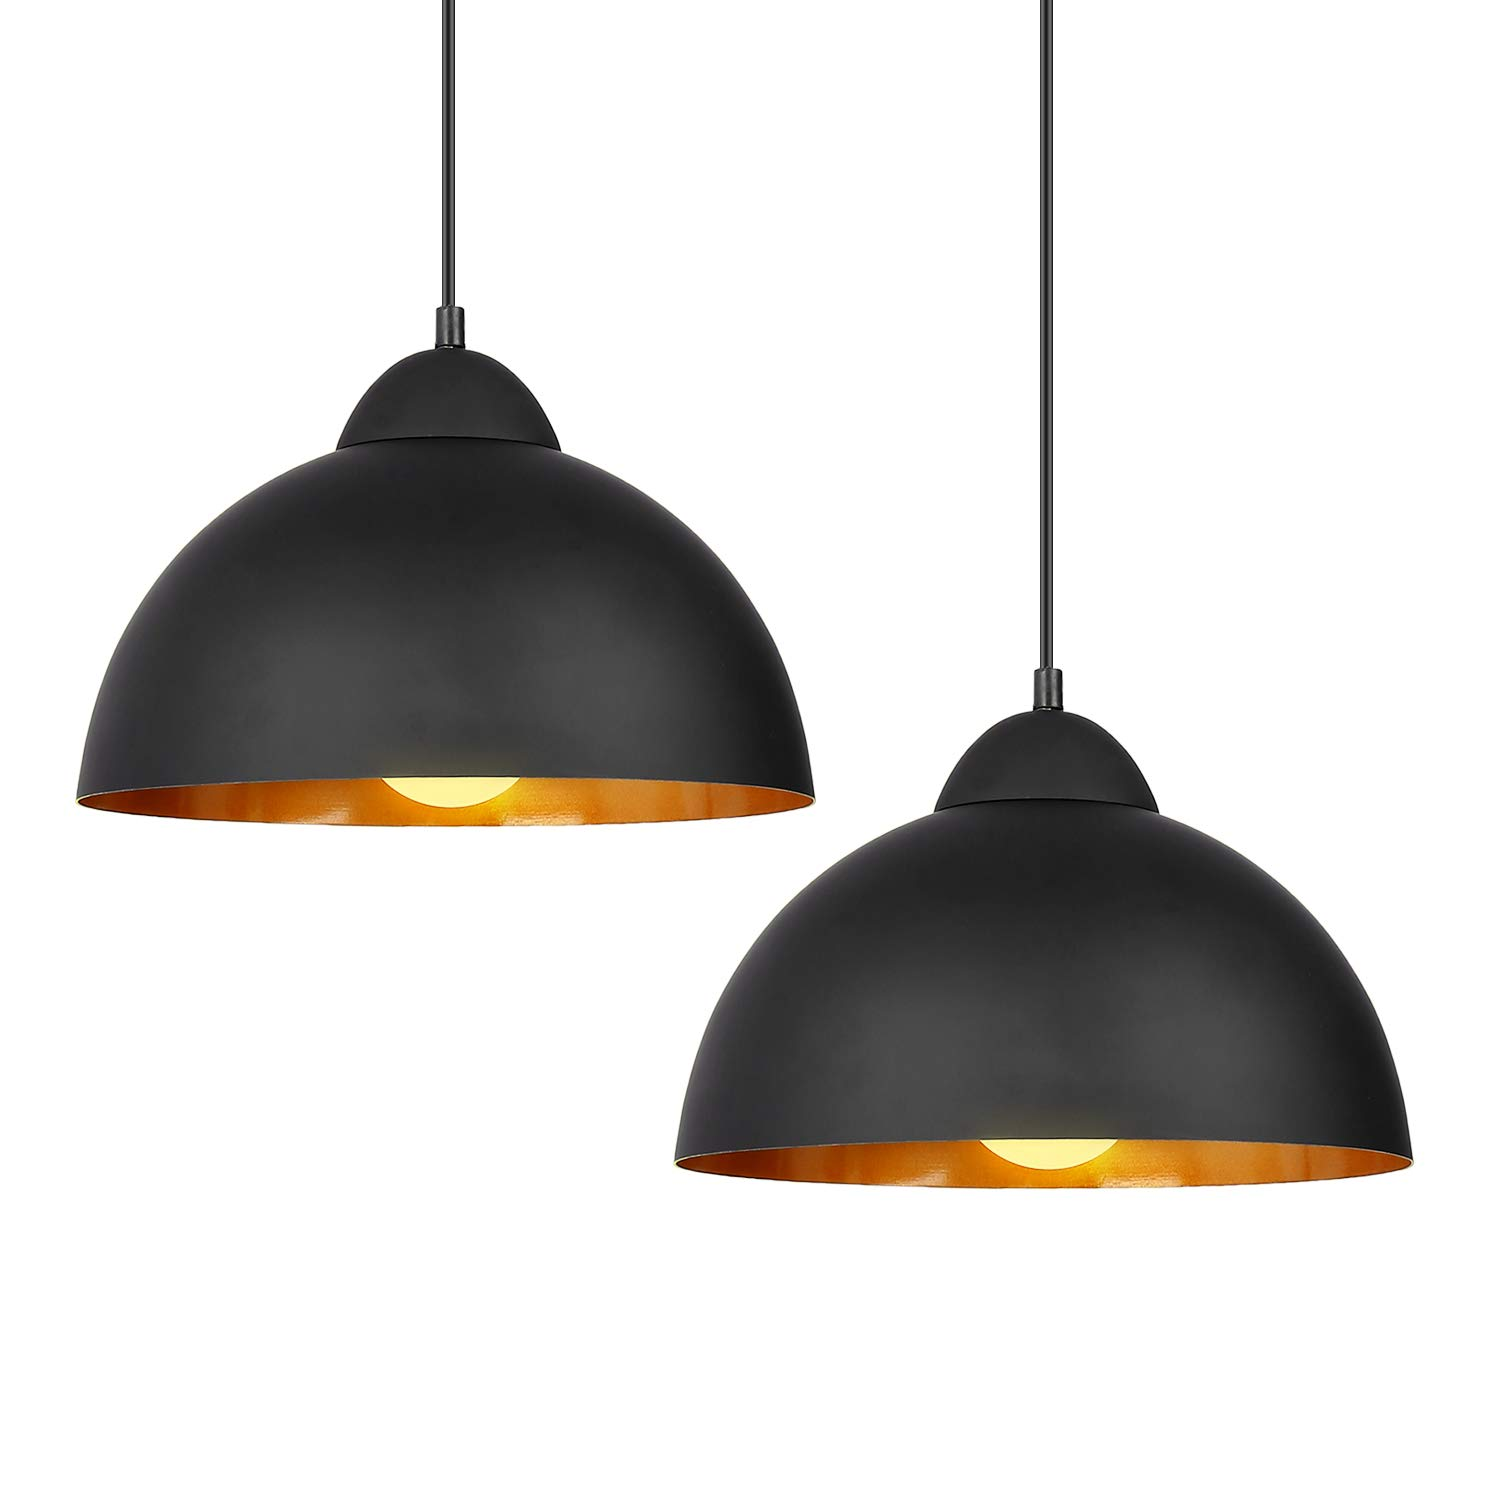 DECKEY Pendant Light,2 Pack,Ceiling Hanging Pendant Lights,Adjustable Height,1.1m,Vintage Classic Industrial Perforated Lampshade for Dinning Room/Study/Living Room,CE,ROHS,FCC Certification (Black)